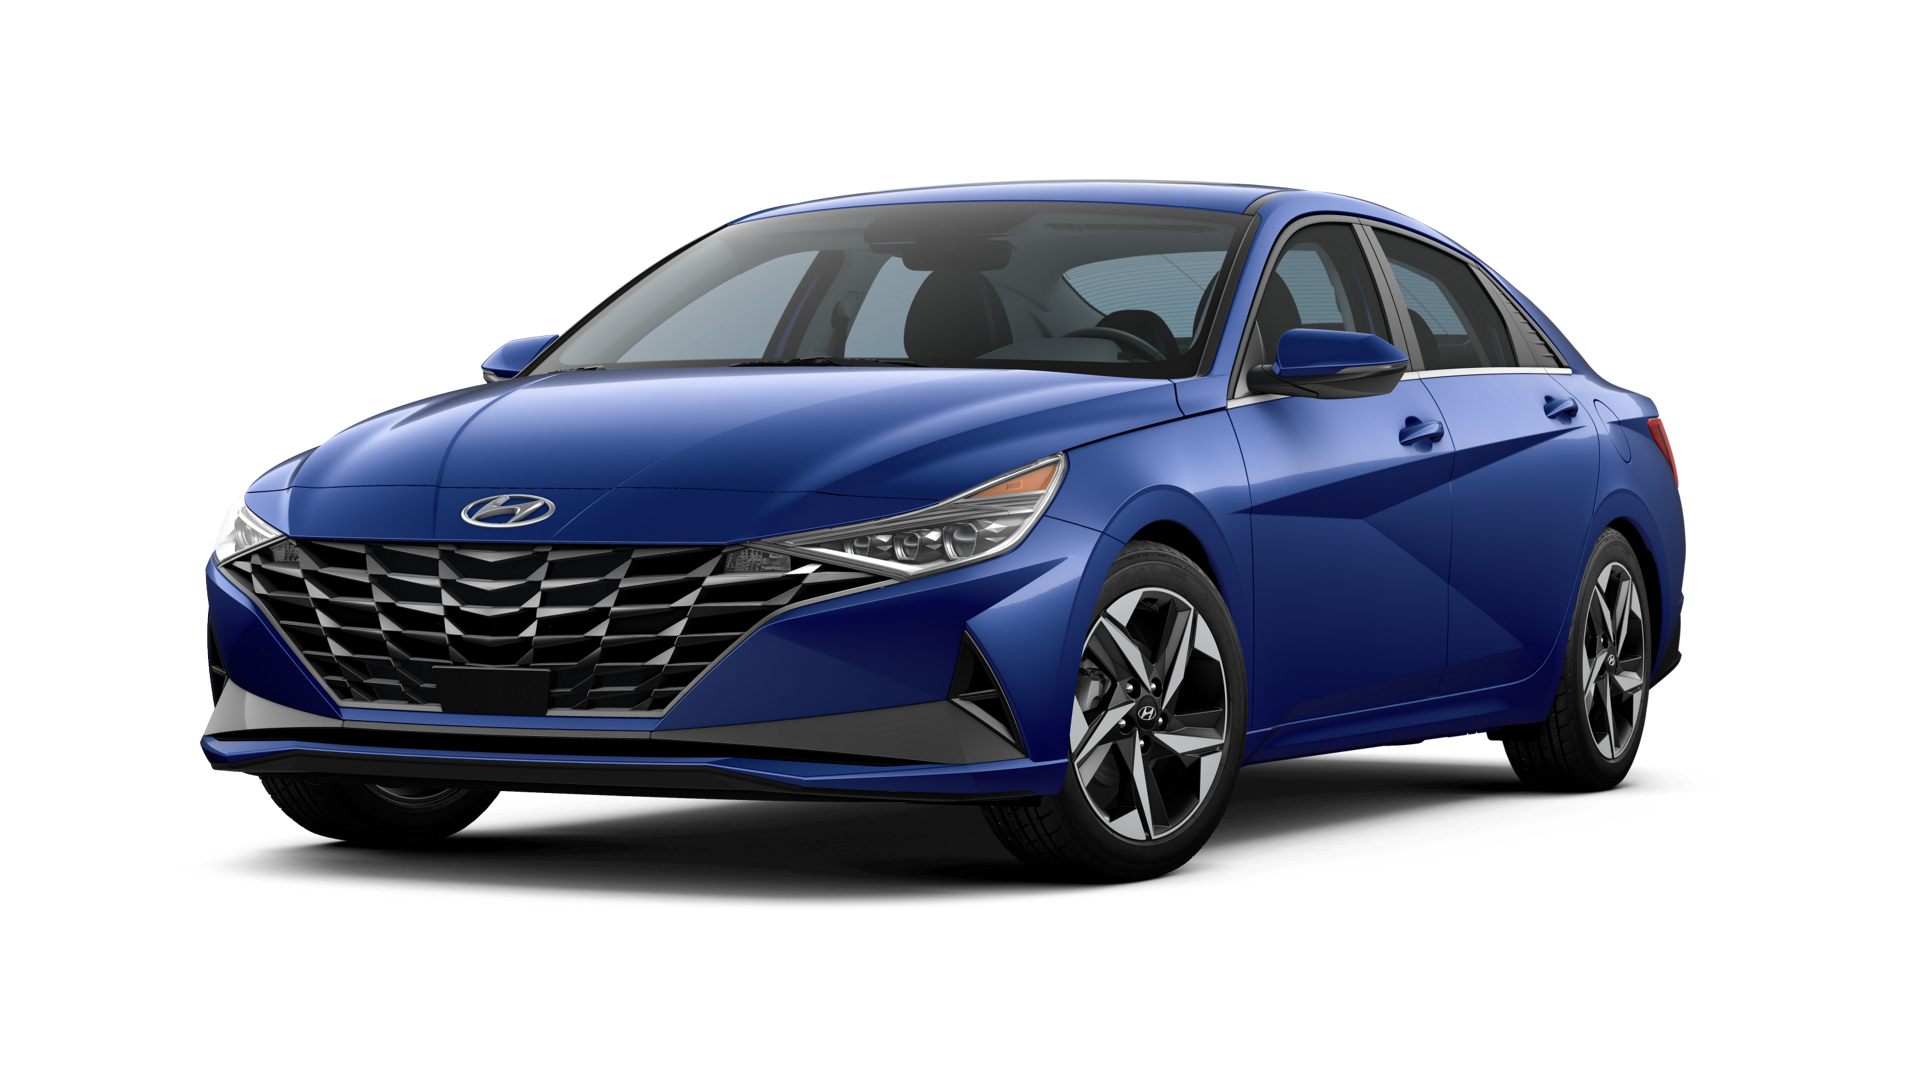 2021 Hyundai Elantra Decatur IL